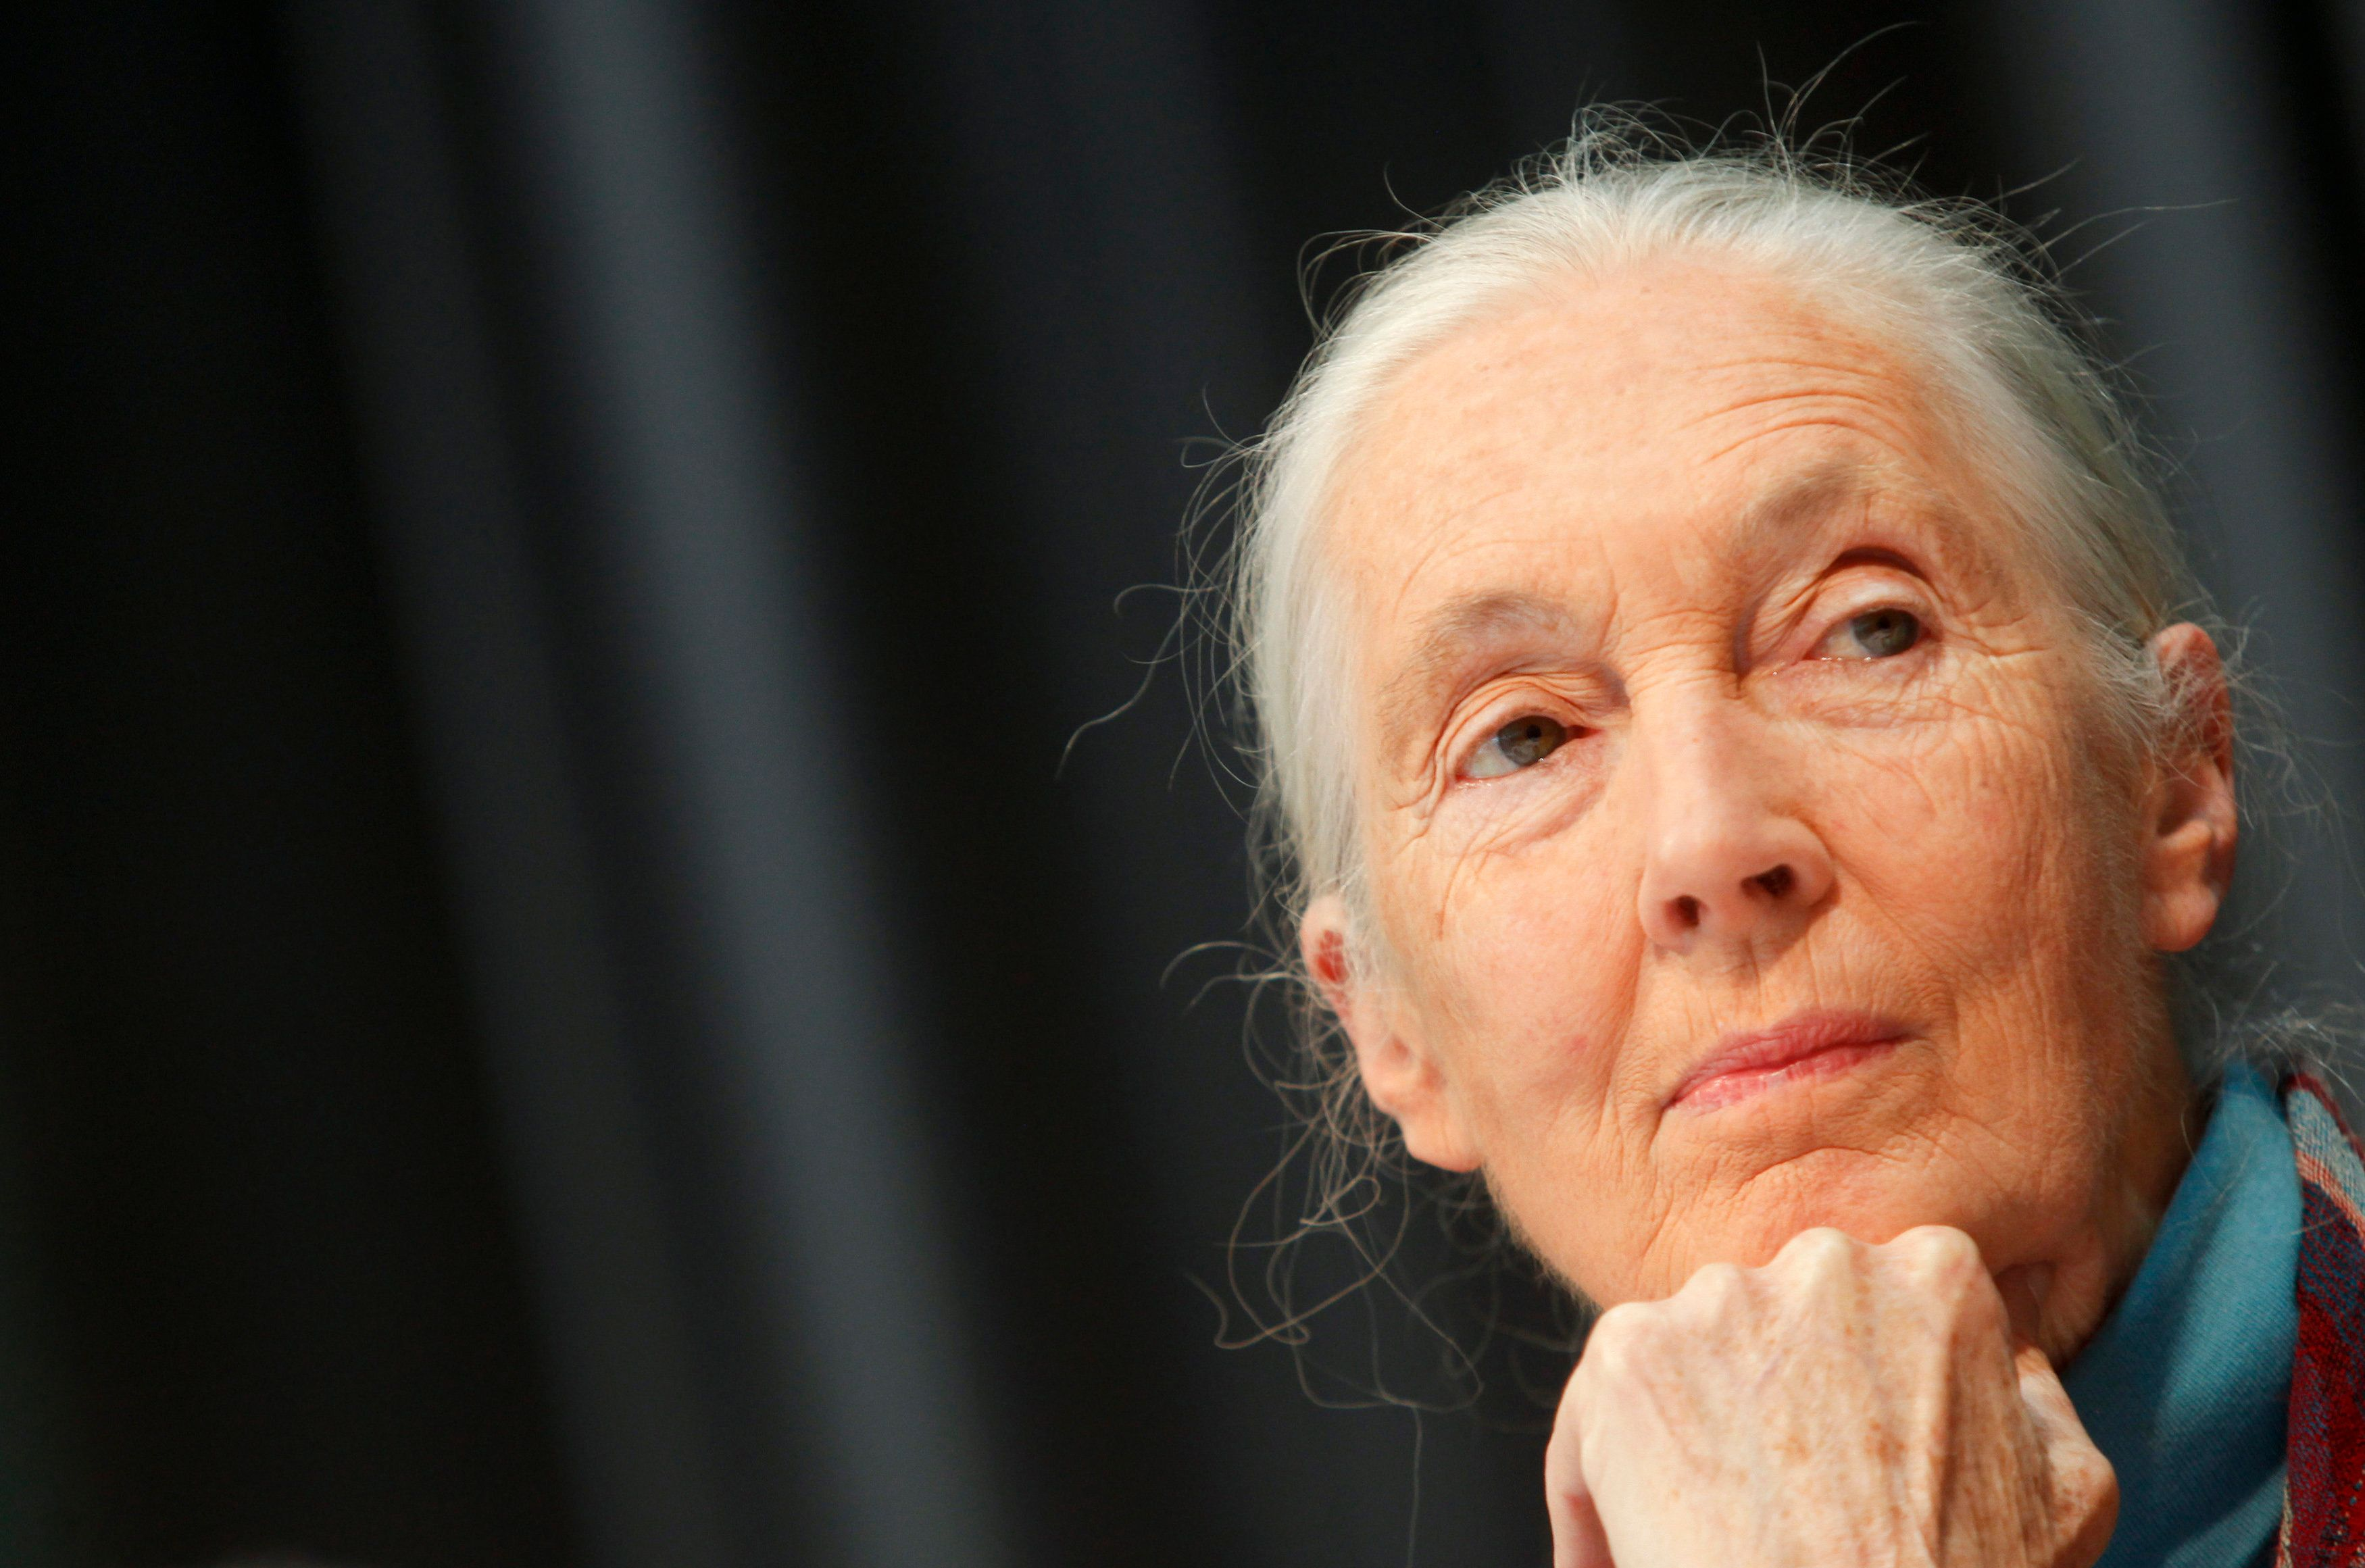 Jane Goodall Says Trump's Efforts To Derail Climate Action Are 'Immensely